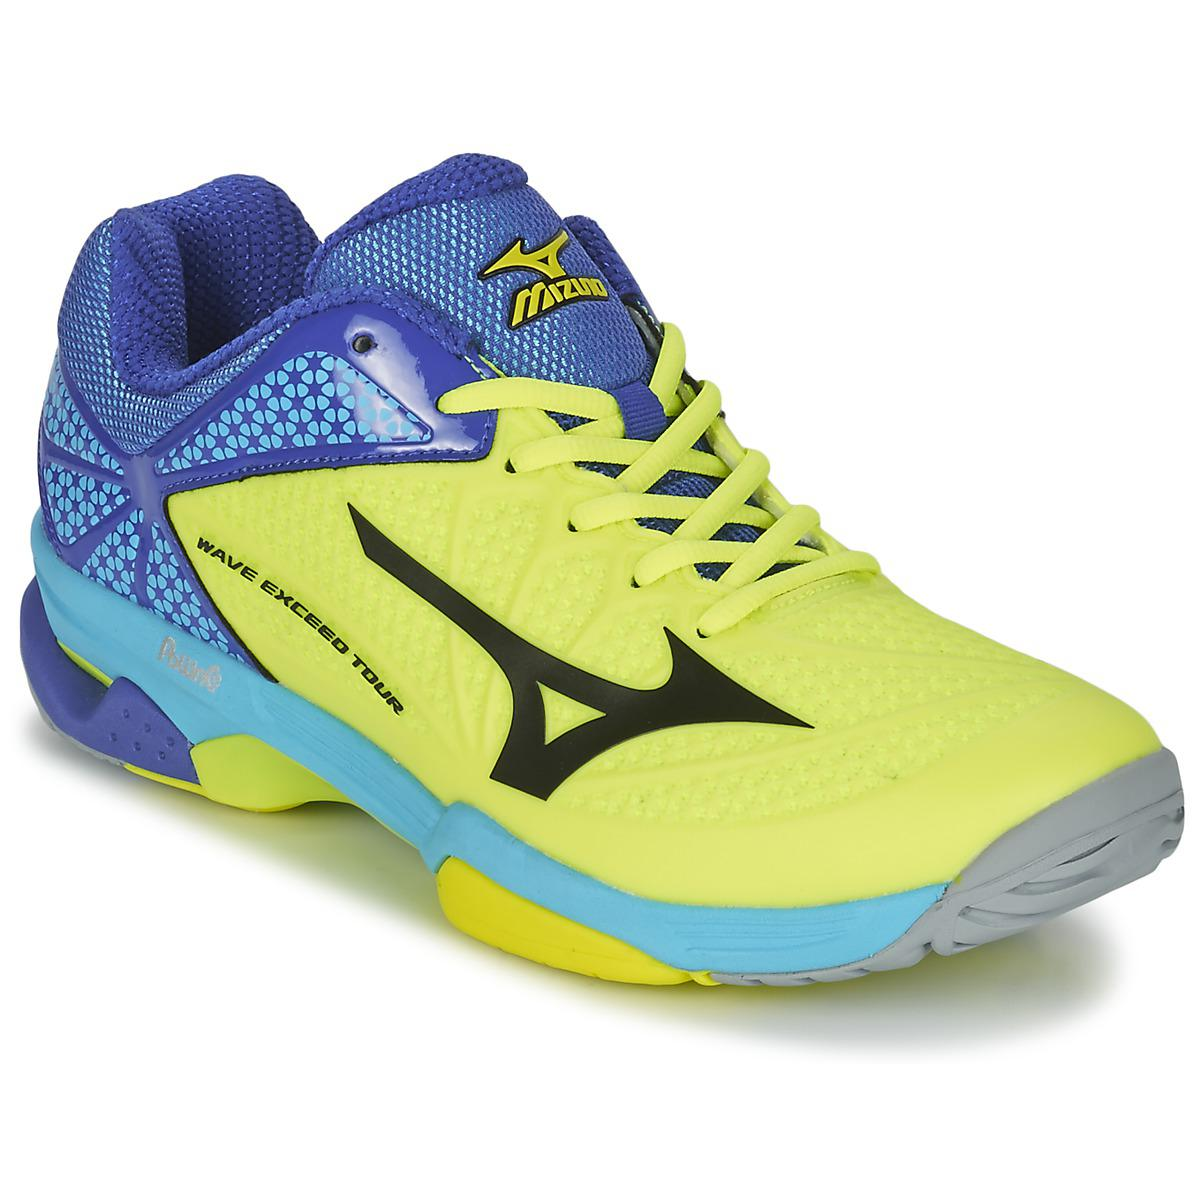 9ef3a2ac5b87 Mizuno Wave Exceed Tour 2 Cc Men's Tennis Trainers (shoes) In Yellow ...